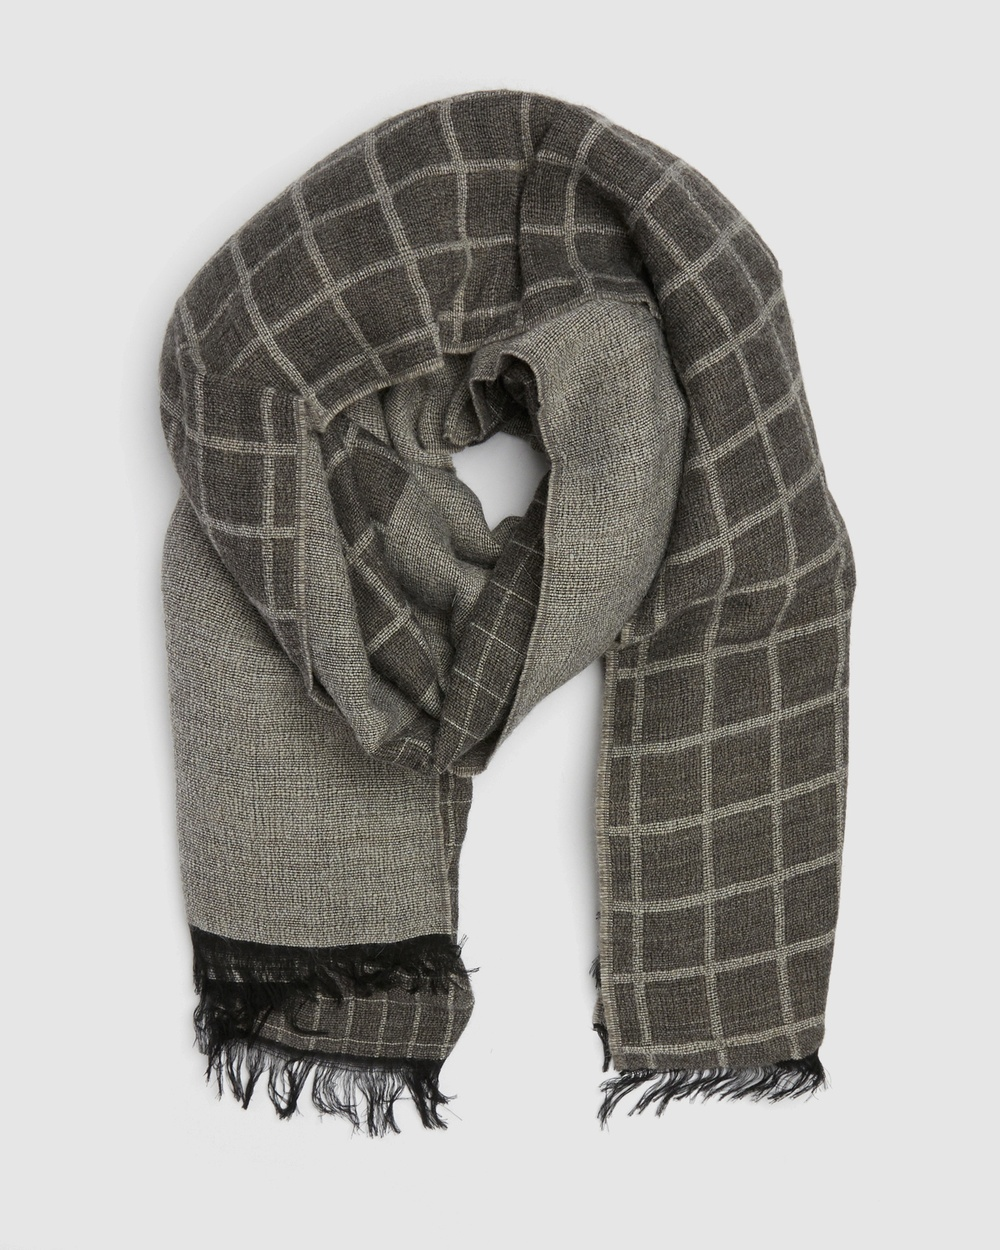 Kate & Confusion Windowpane Wool Blend Scarf Scarves Gloves Brown